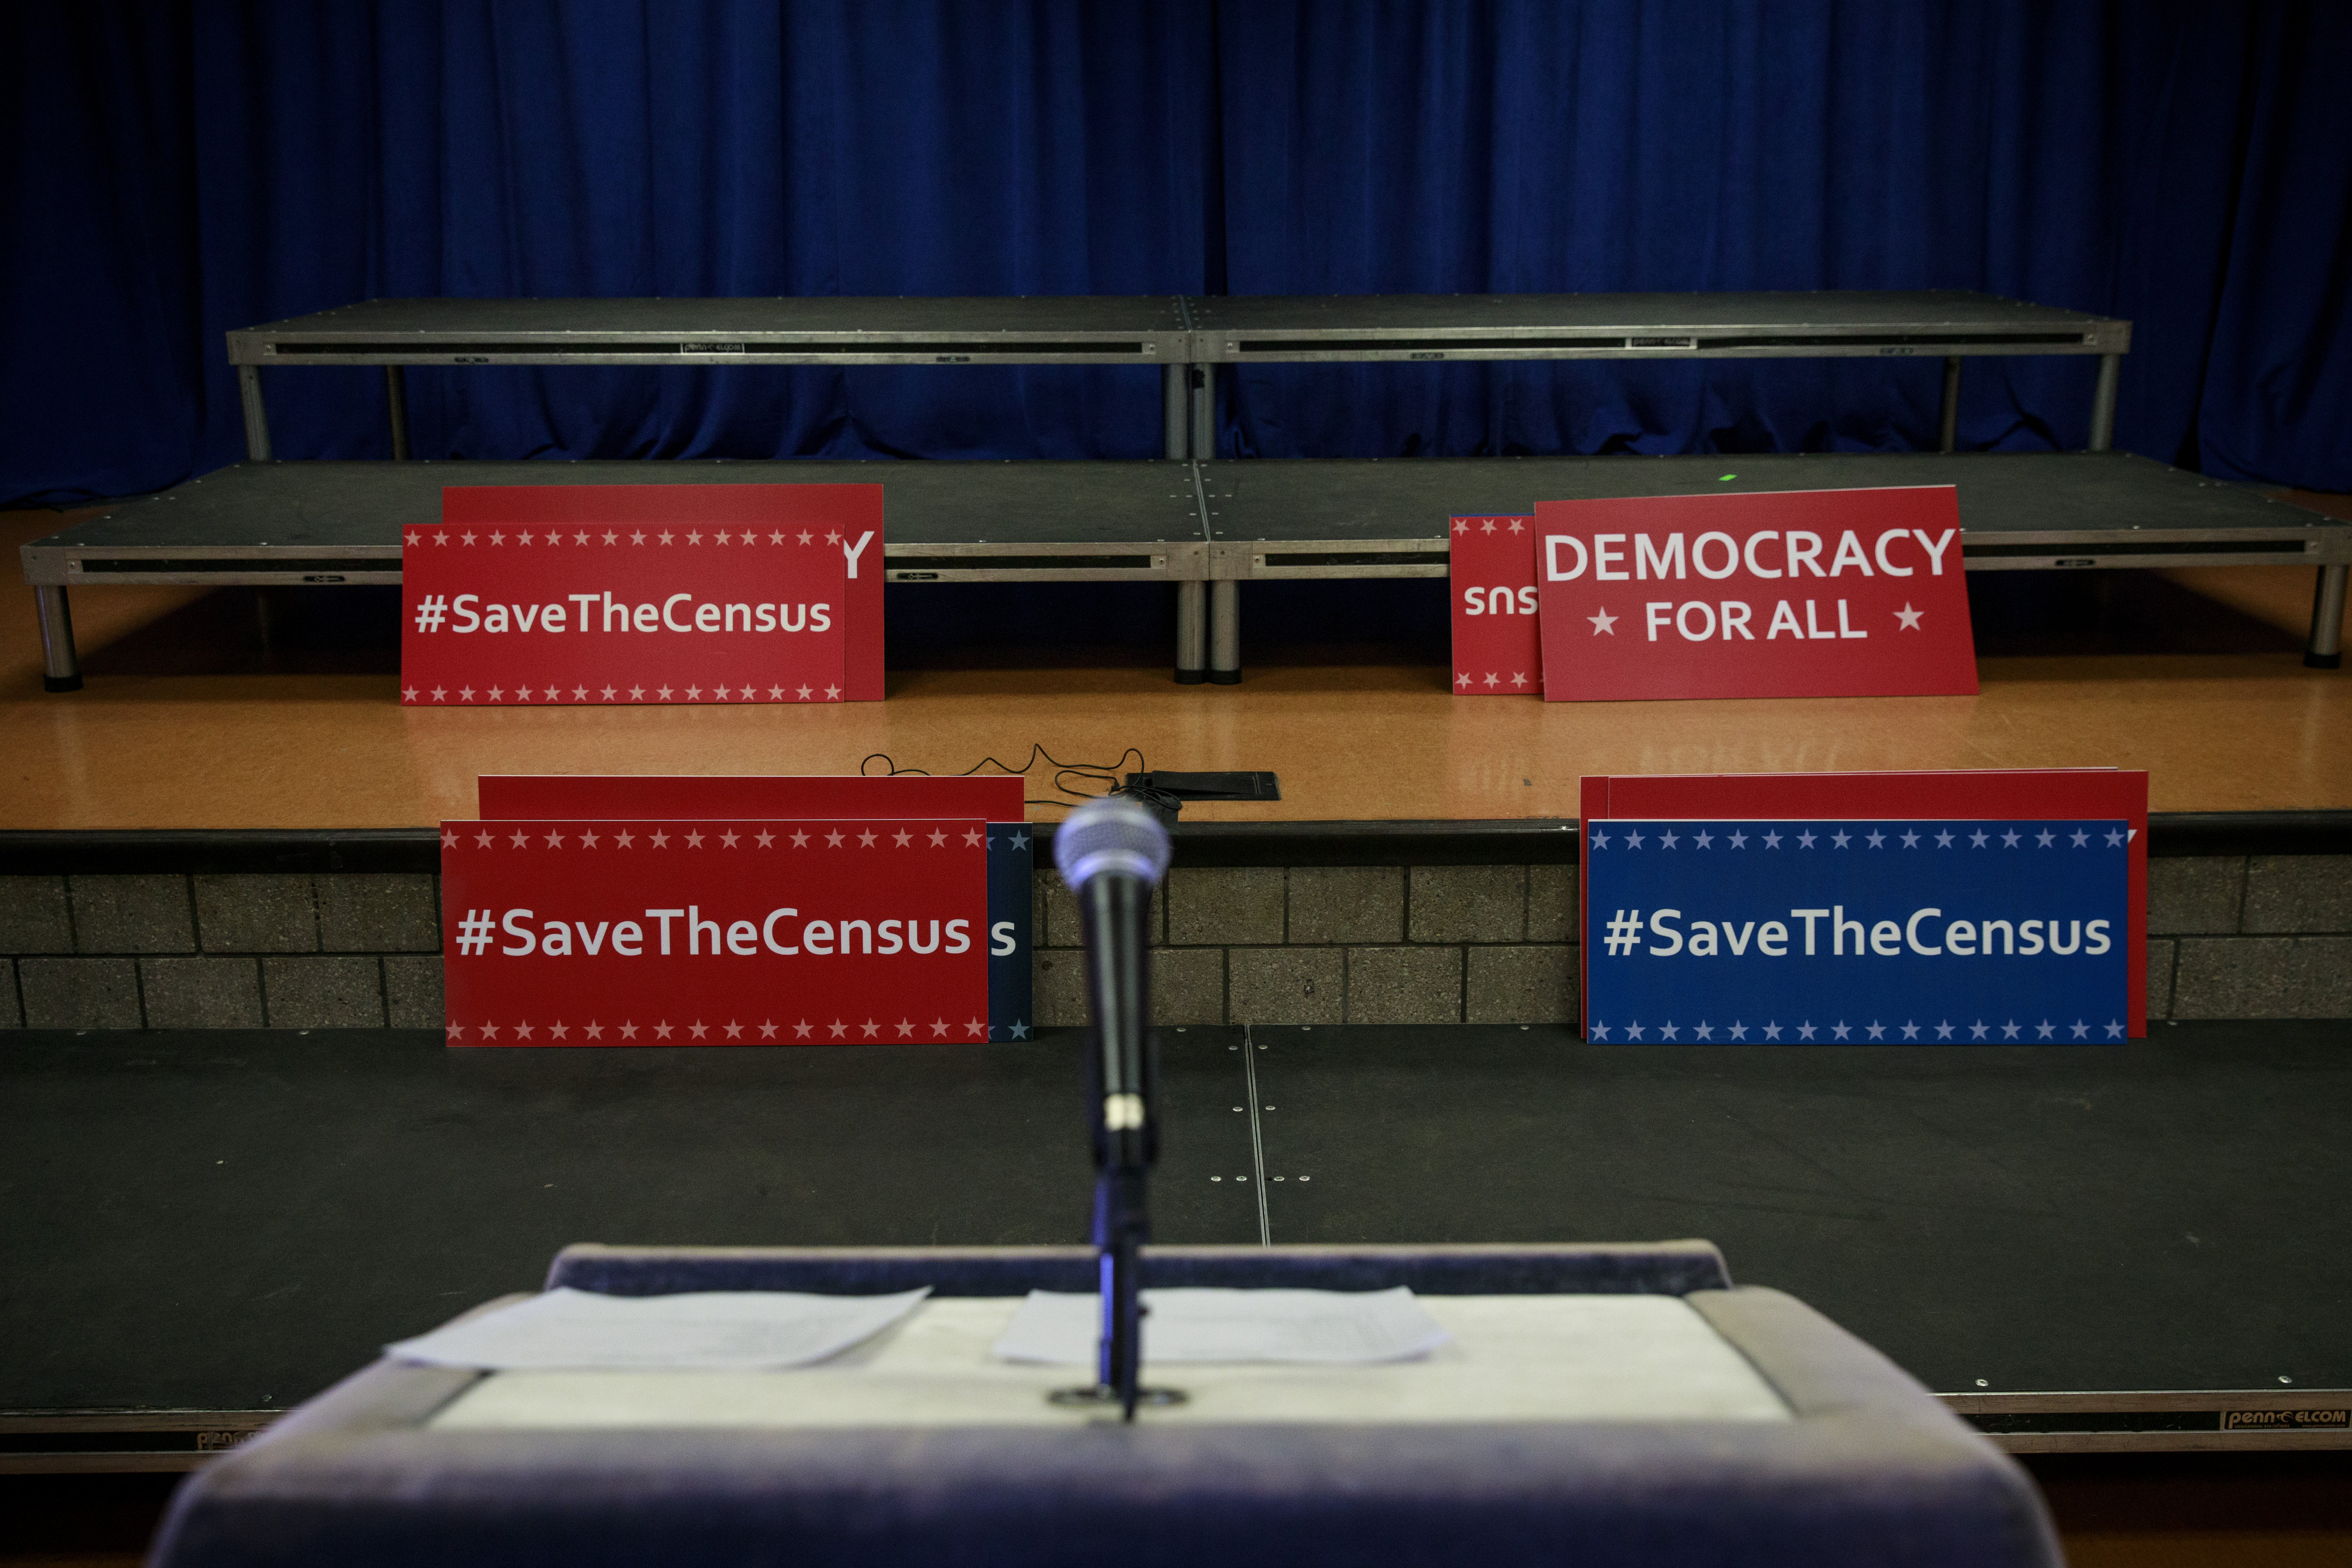 igns sit behind the podium before the start of a press conference with New York Attorney General Eric Schneiderman to announce a multi-state lawsuit to block the Trump administration from adding a question about citizenship to the 2020 Census form, at the headquarters of District Council 37, New York City's largest public employee union, April 3, 2018 in New York City.